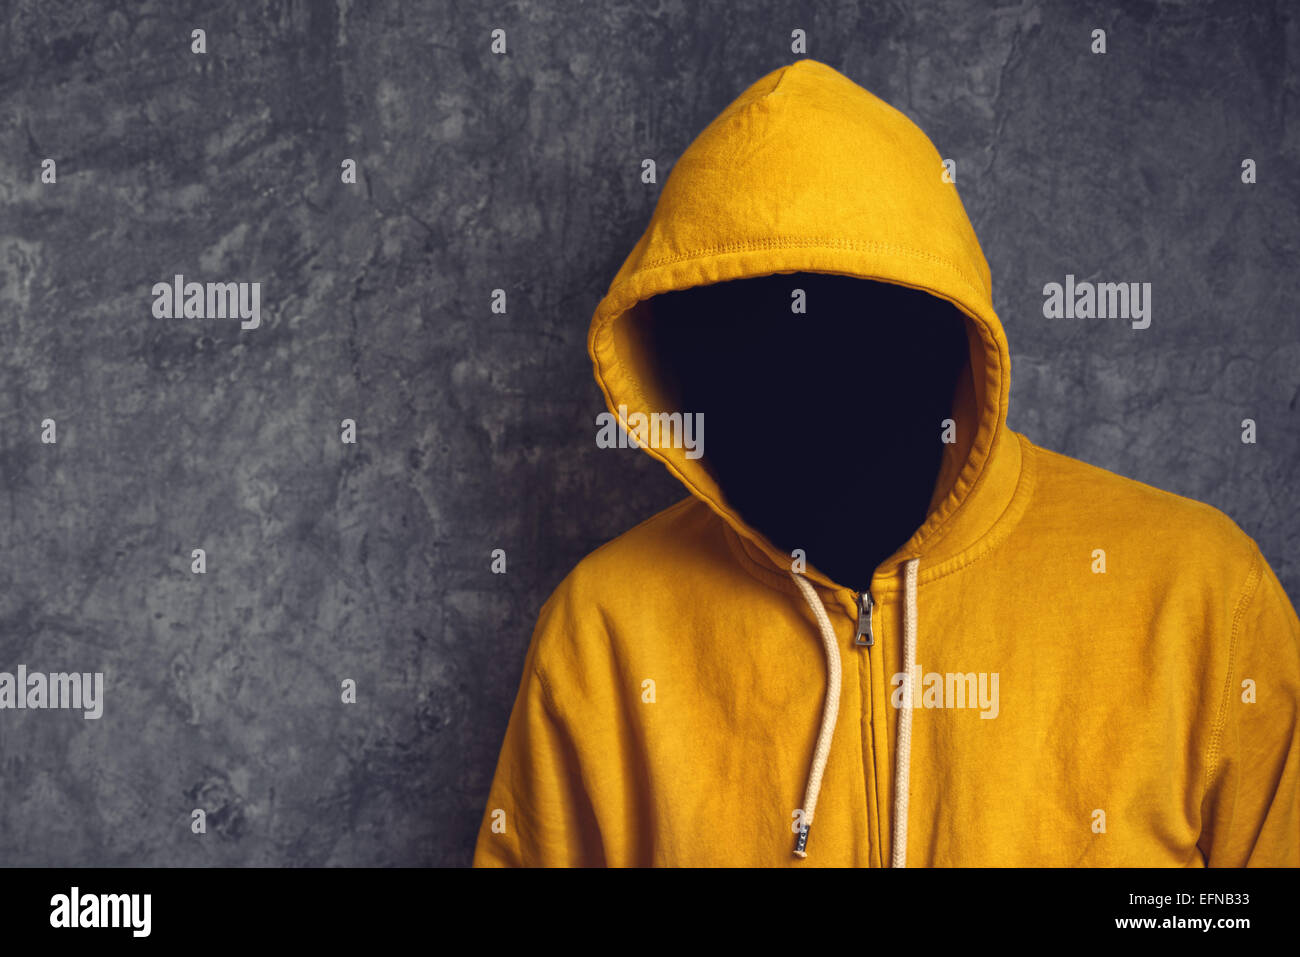 Faceless unknown and unrecognizable person without identity wearing yellow hooded jacket. - Stock Image